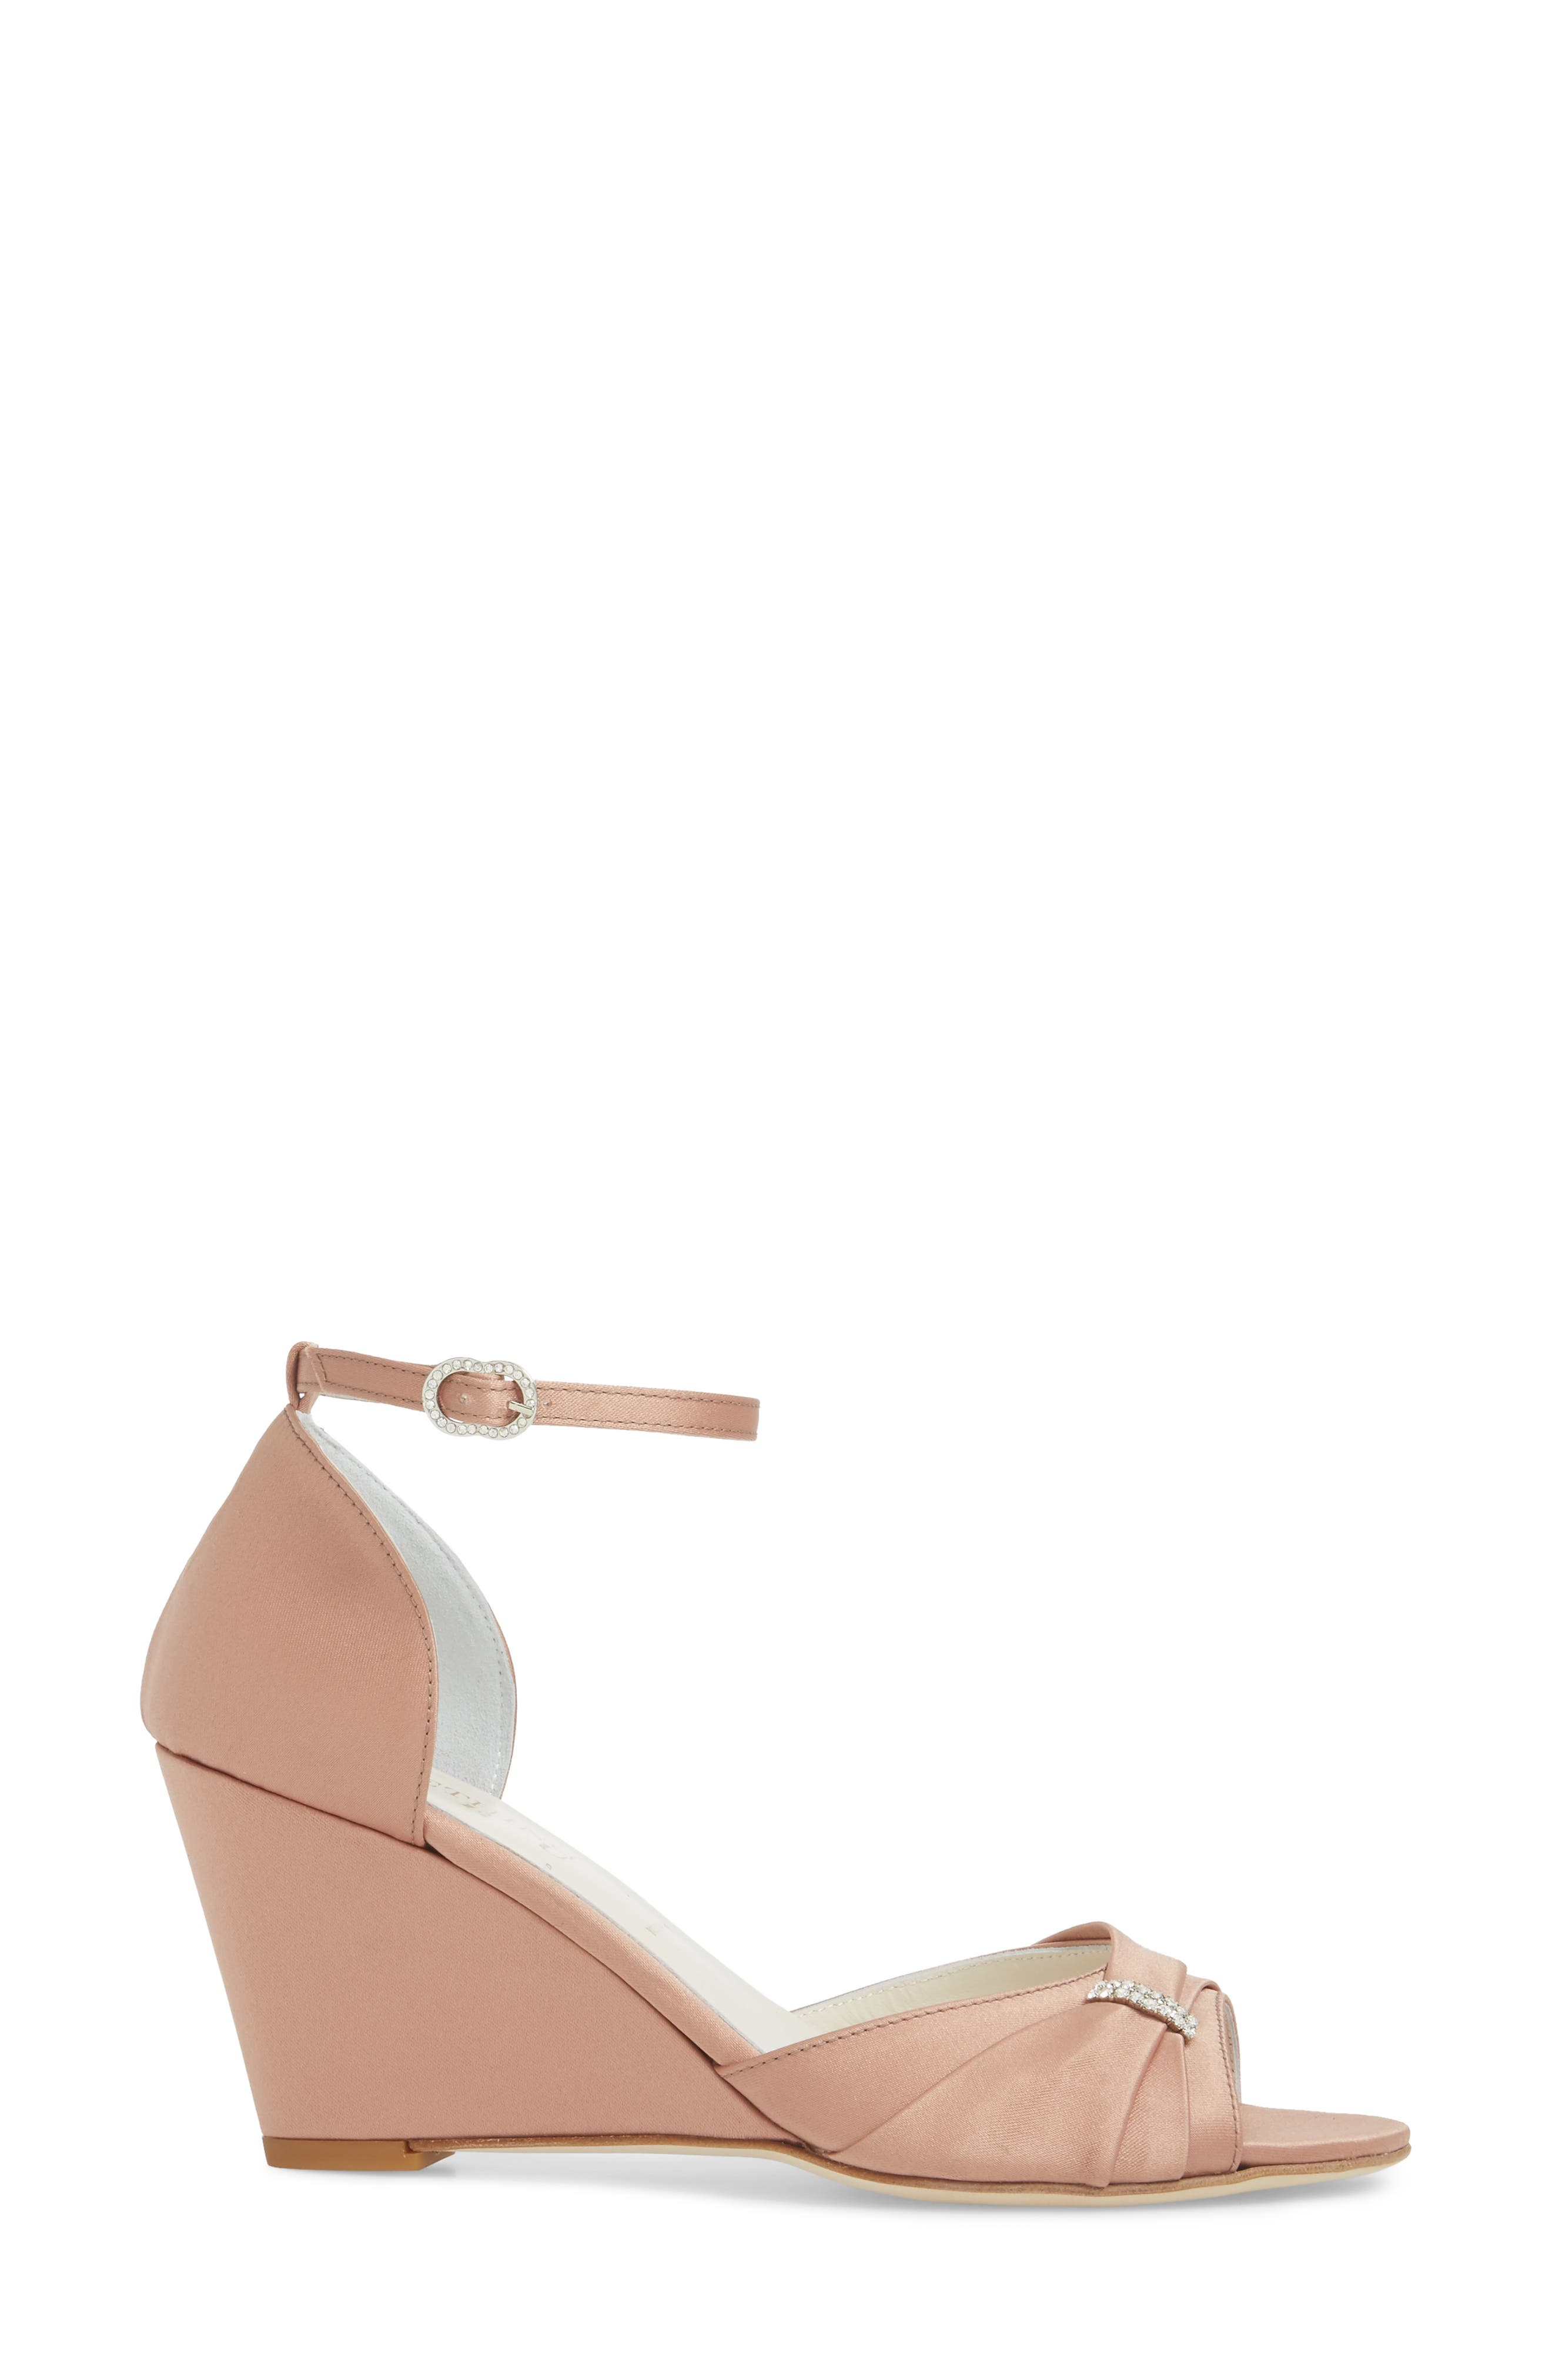 Queenie Ankle Strap Wedge Sandal,                             Alternate thumbnail 3, color,                             BLUSH SATIN